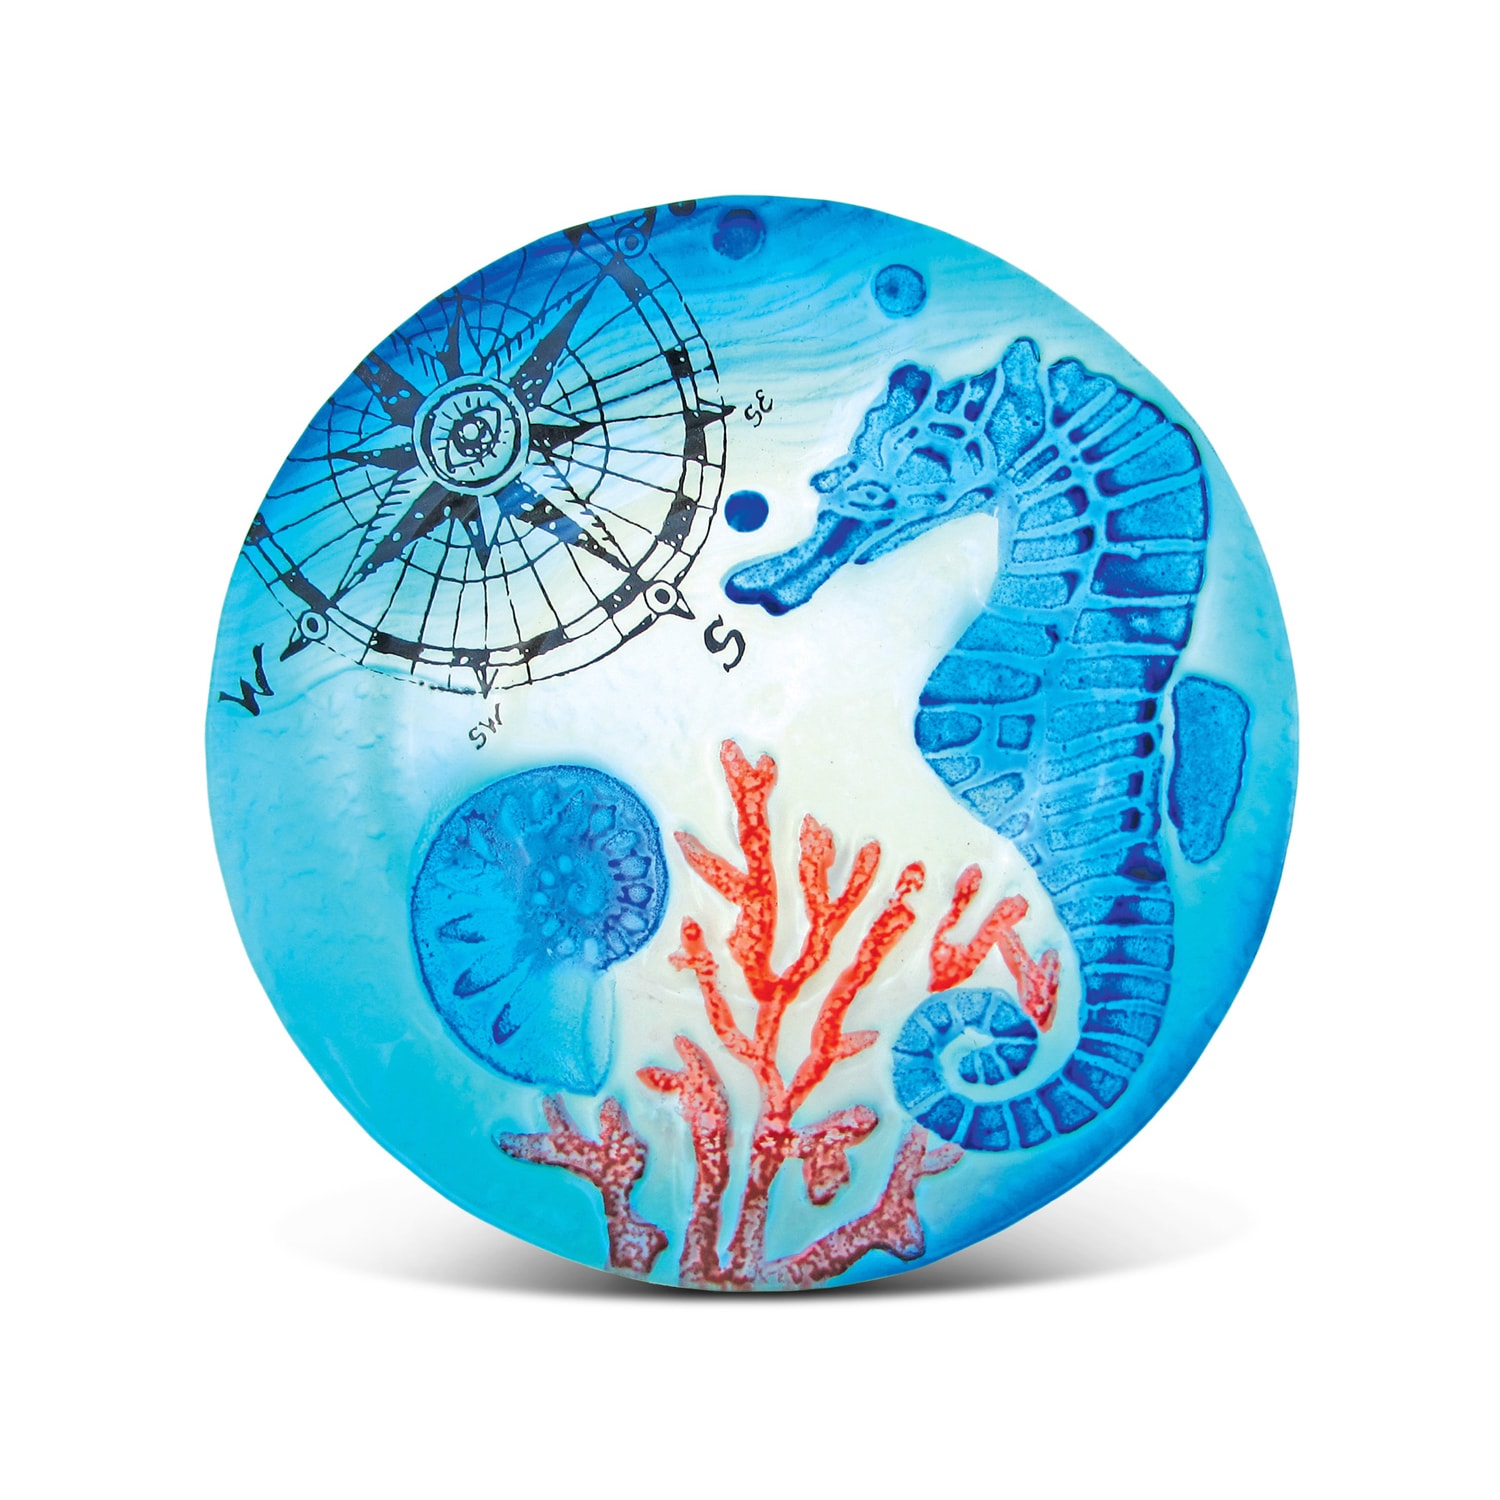 Puzzled Blue Glass 8-inch Circle Seahorse Plate Decor (Mu...